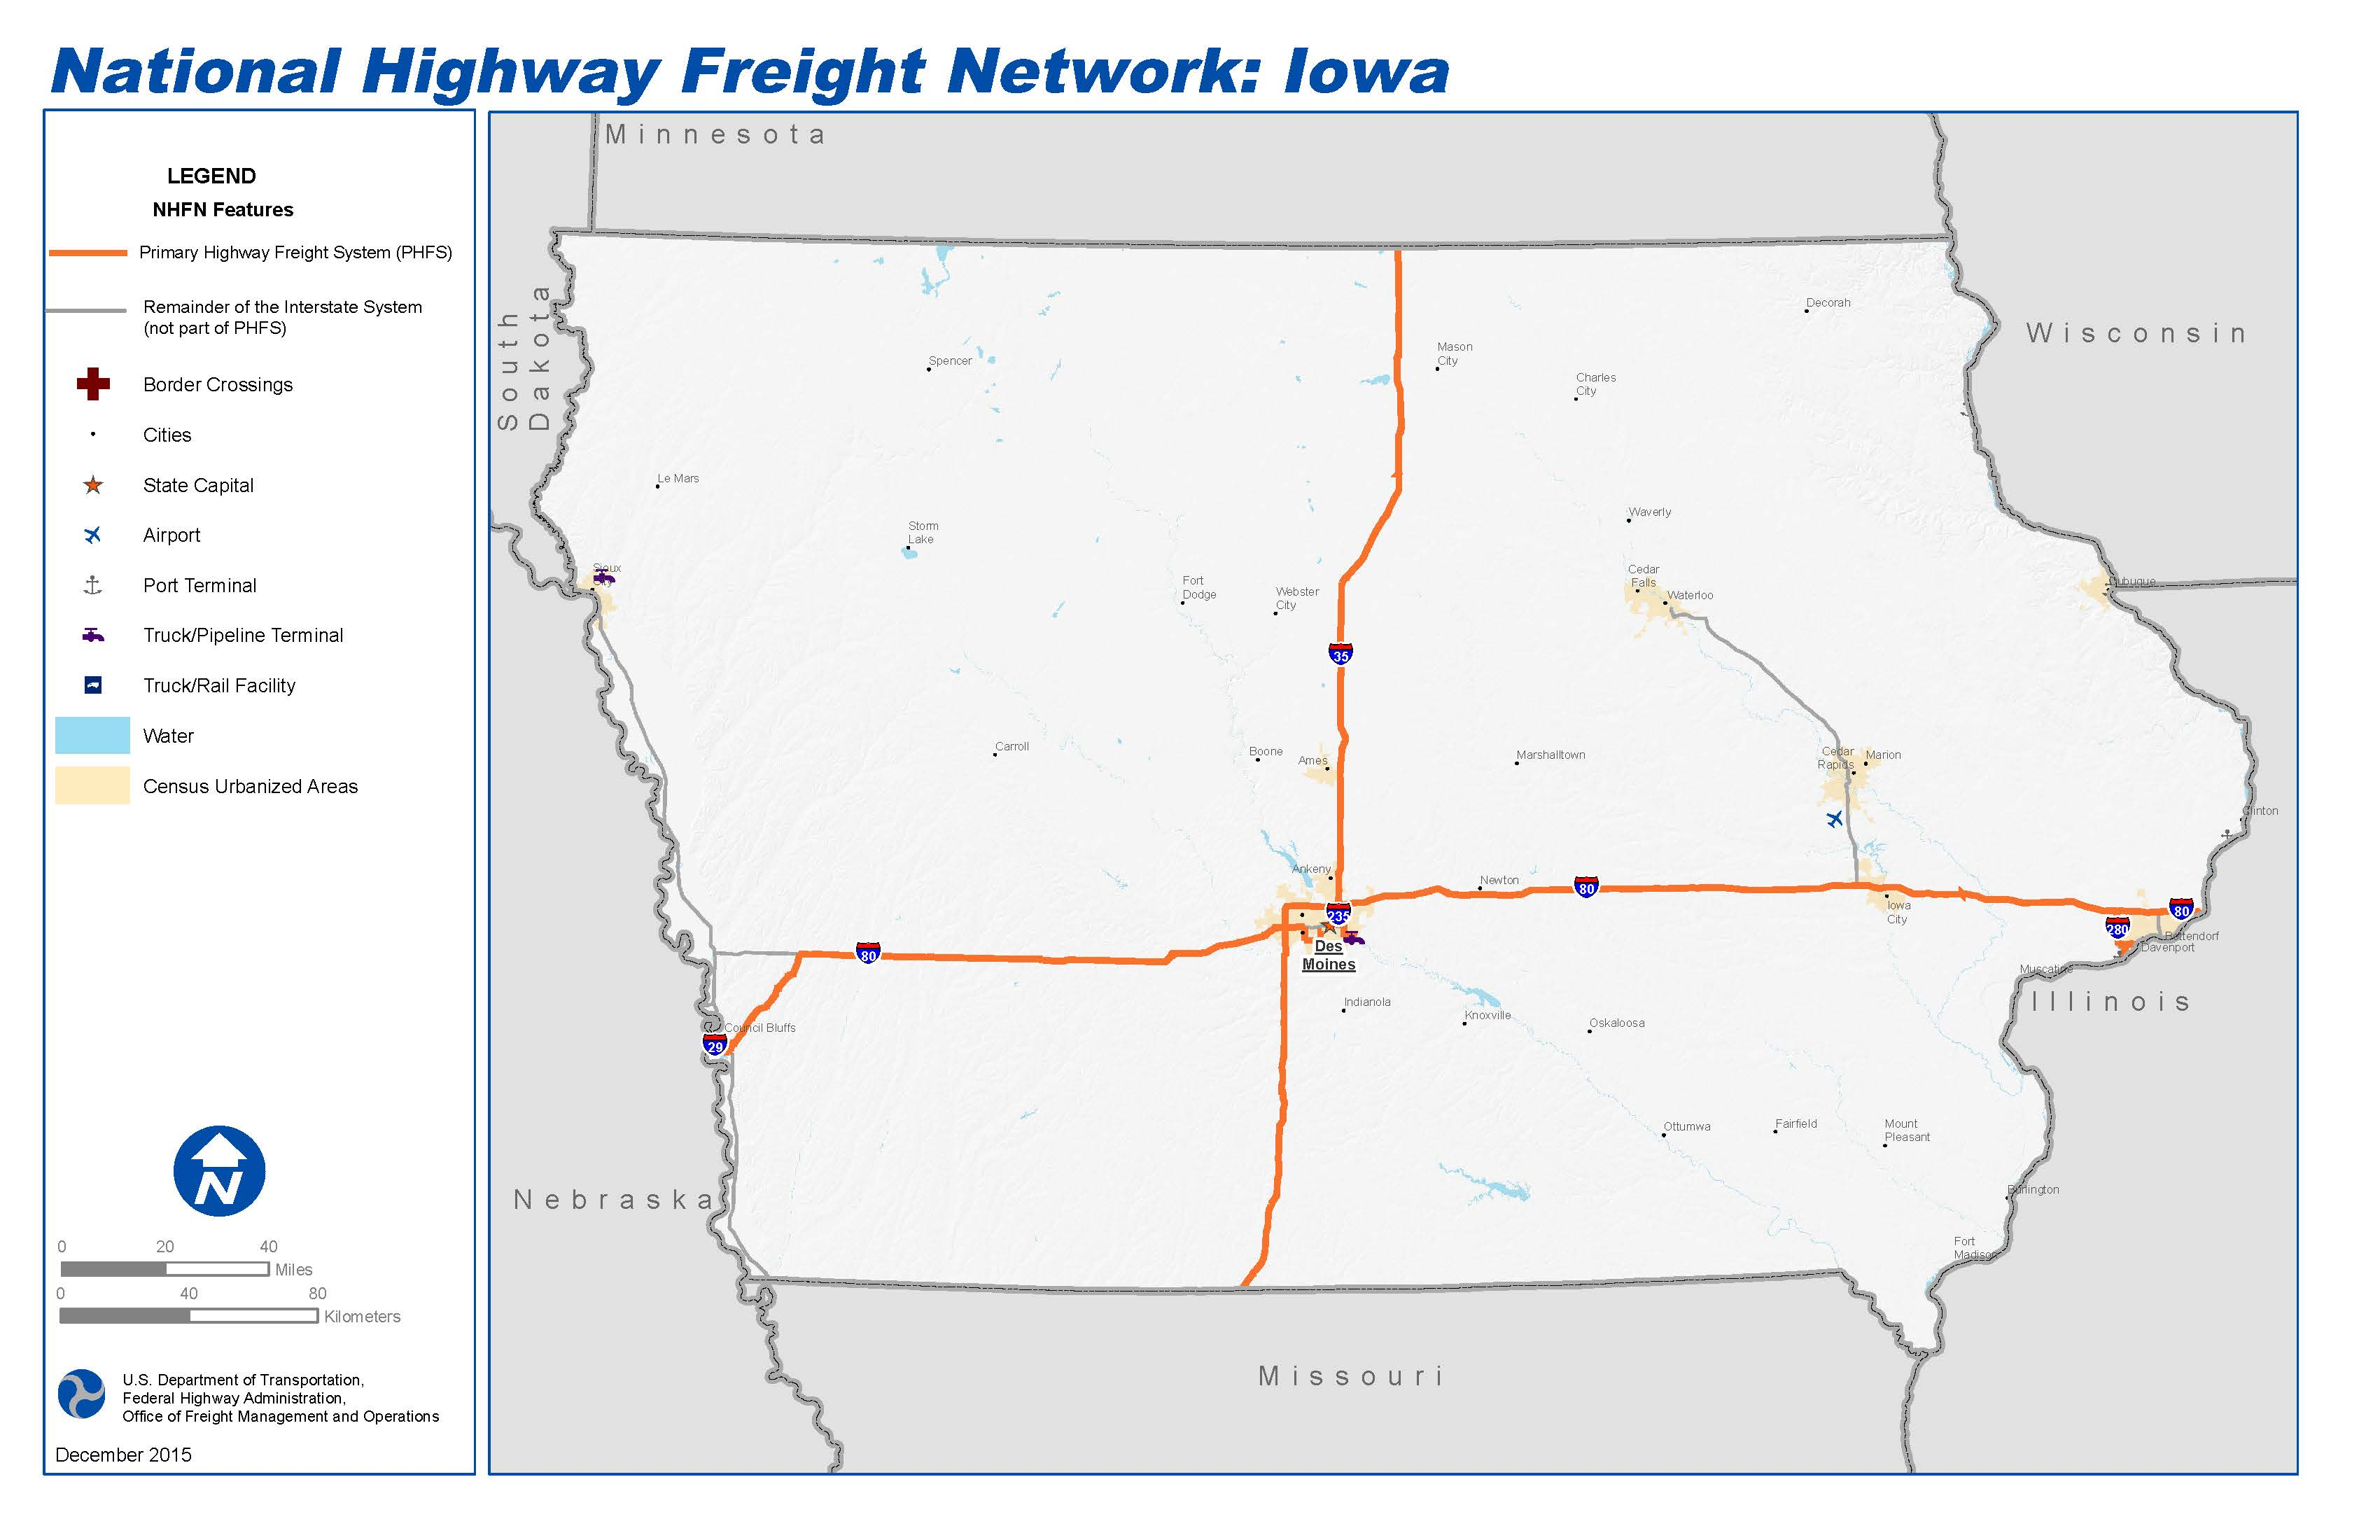 National Highway Freight Network Map and Tables for Iowa FHWA